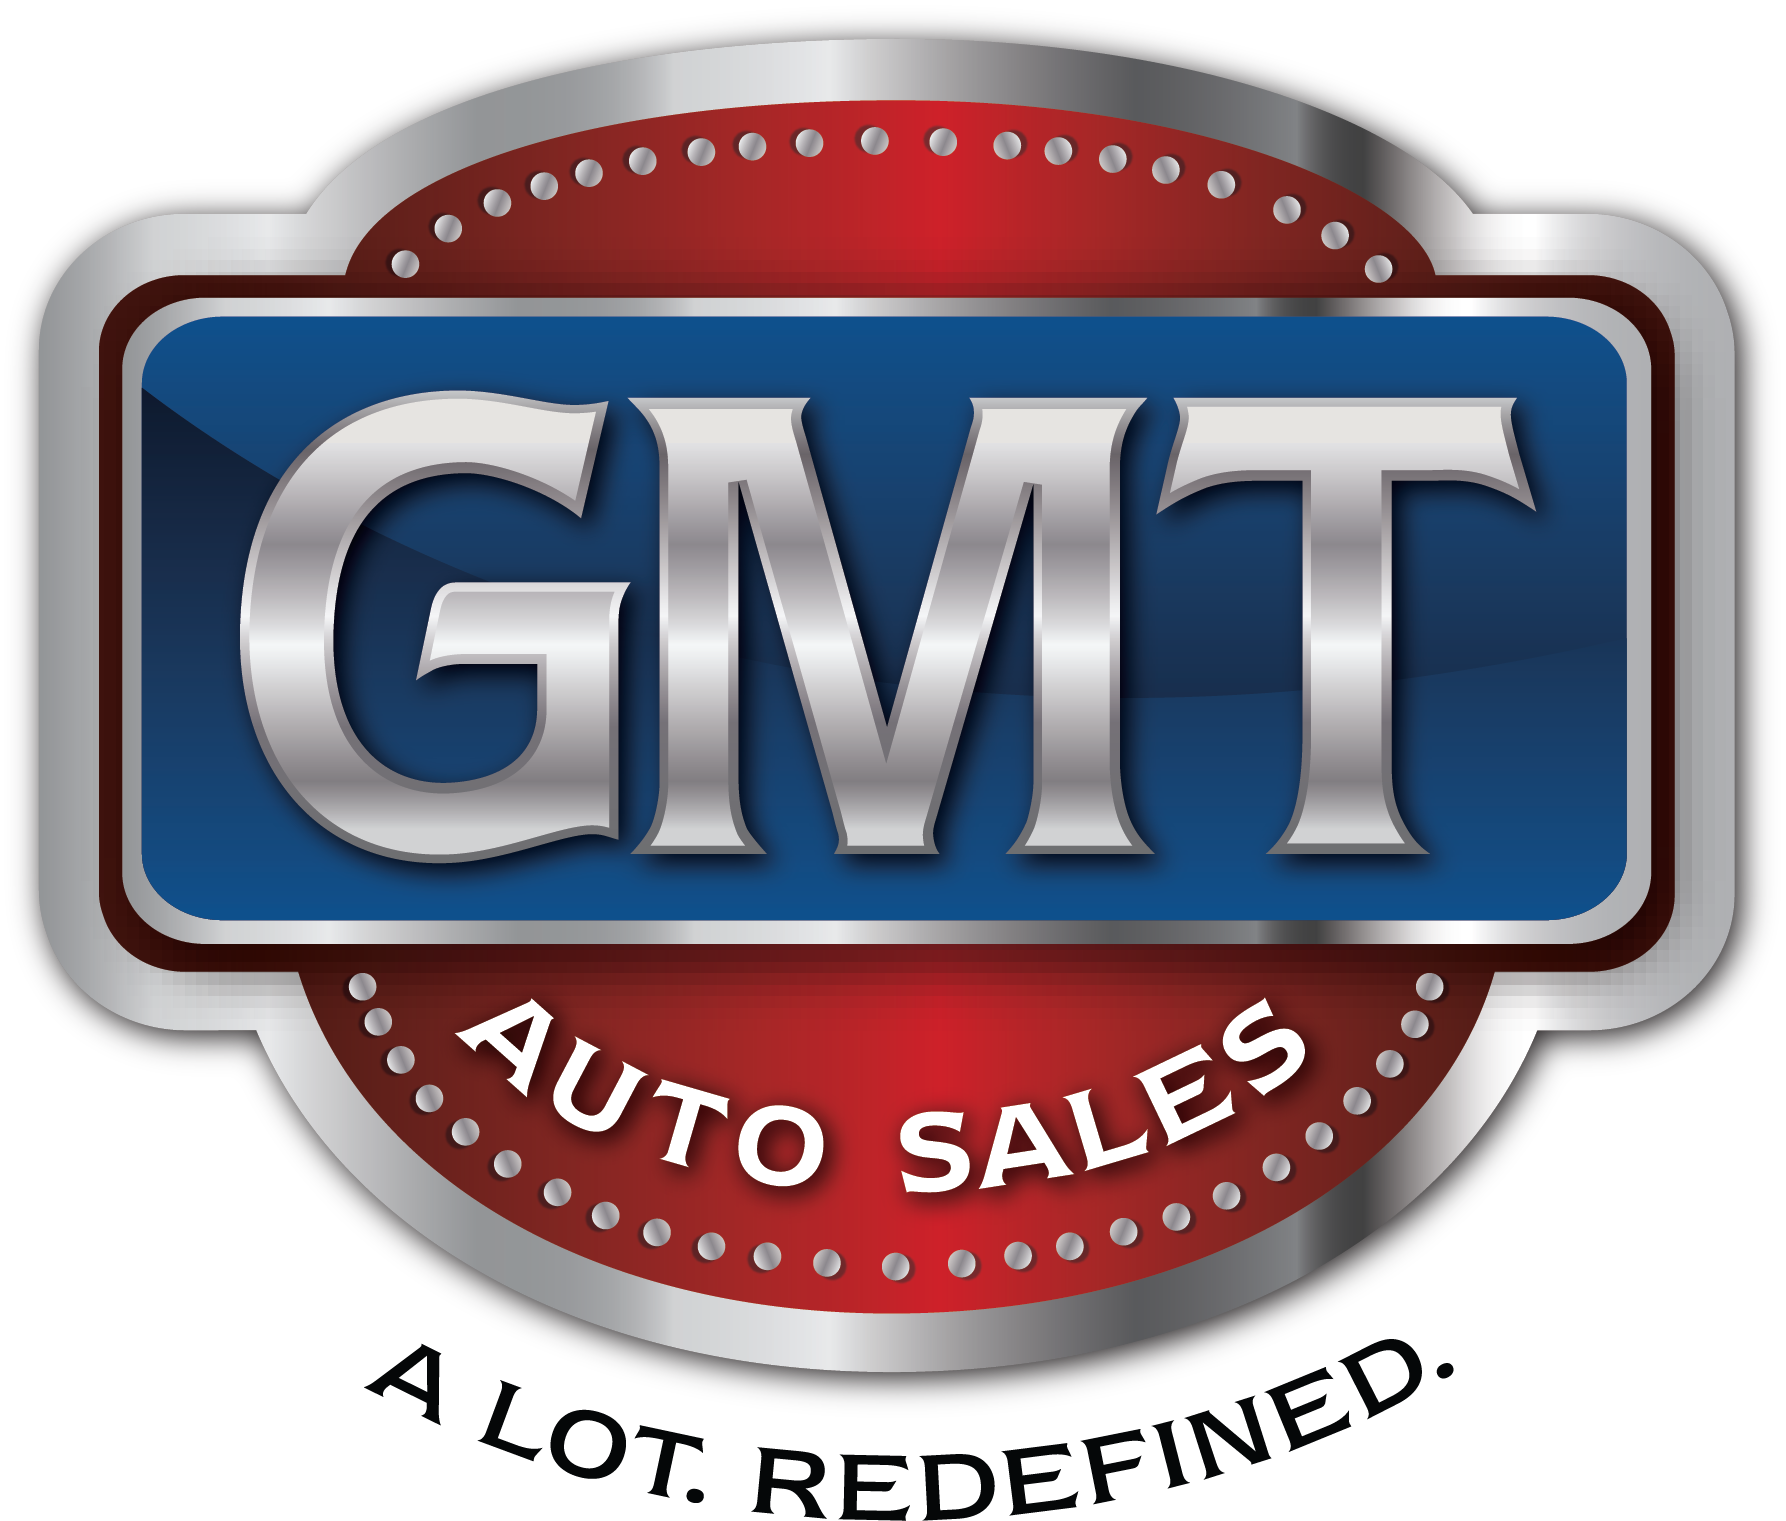 Toyota Dealers St Louis: Pre-owned, Chevrolet, Ford, GMC